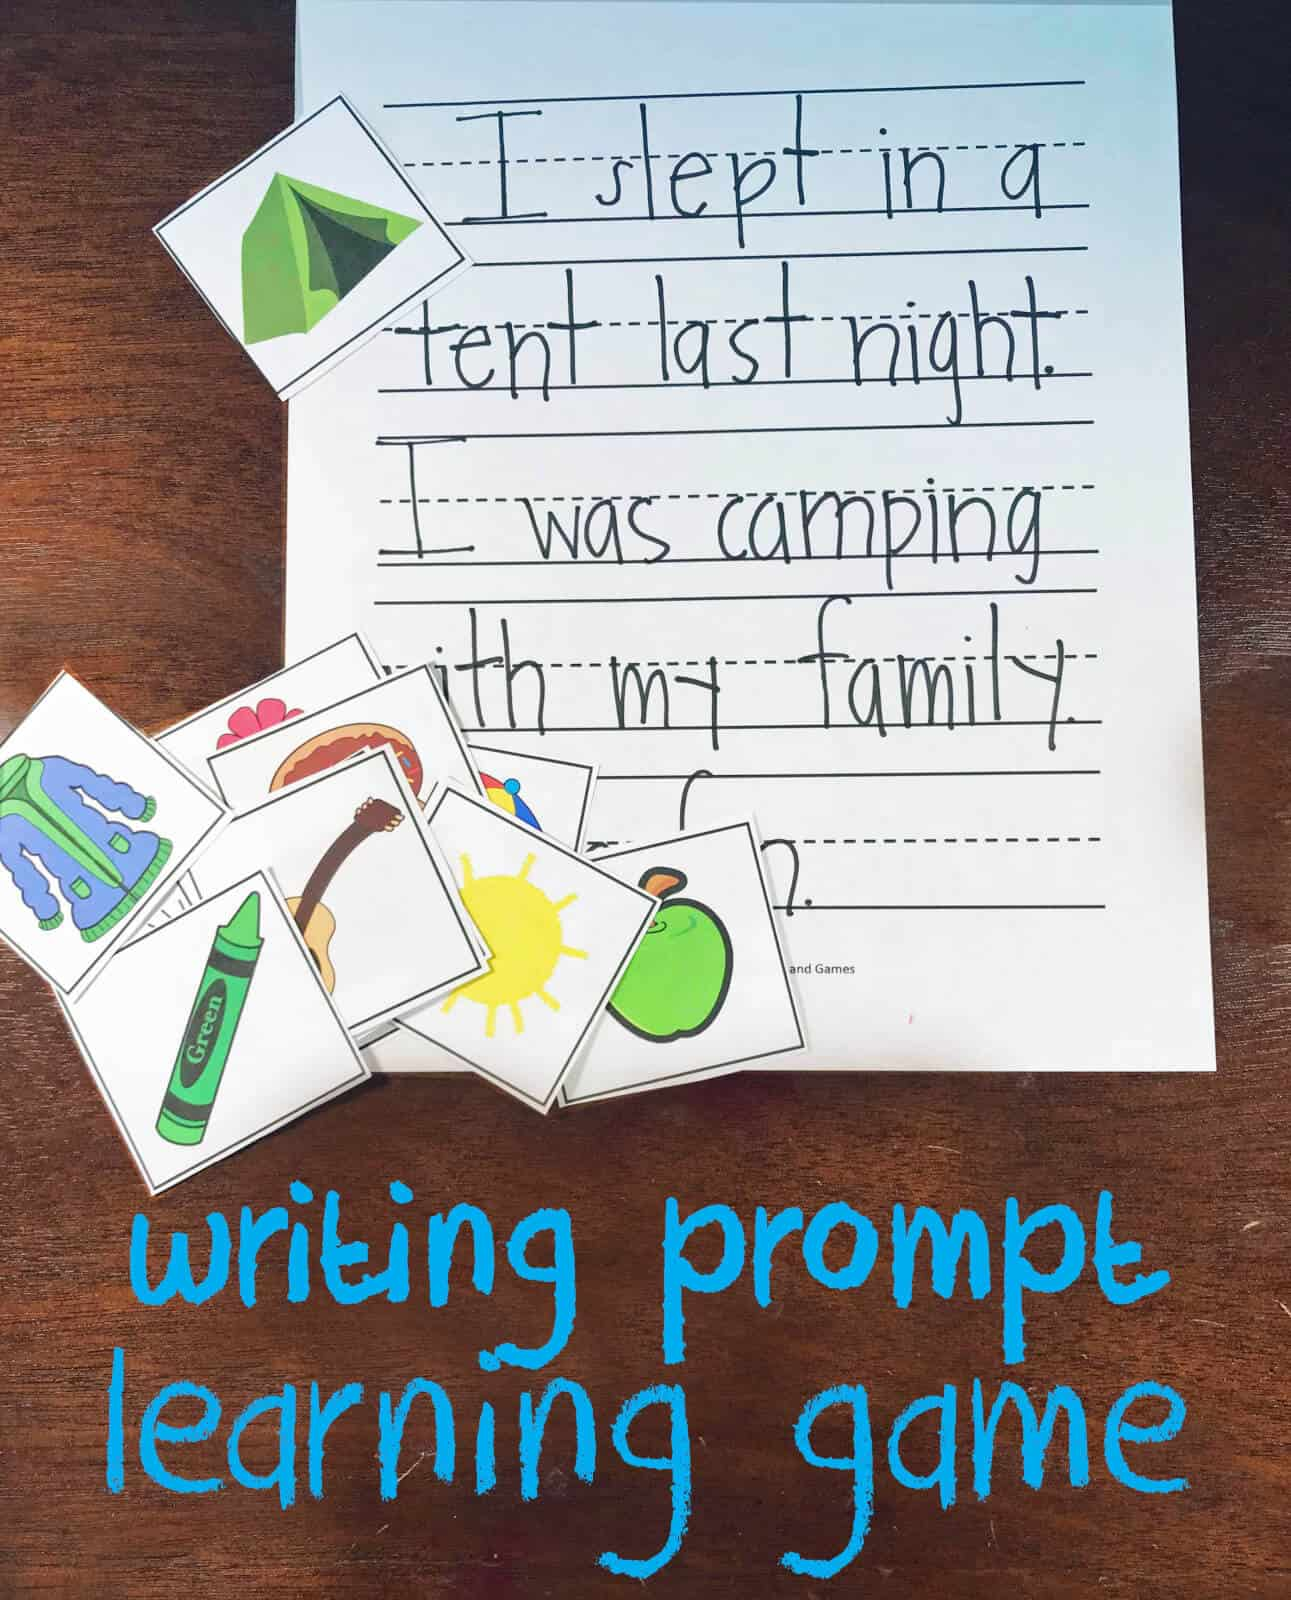 FREE Picture Writing Prompt Learning Game - kids will have fun practicing writing with this creative writing prompt turned game for kindergarten, first grade, 2nd grade 3rd grade.